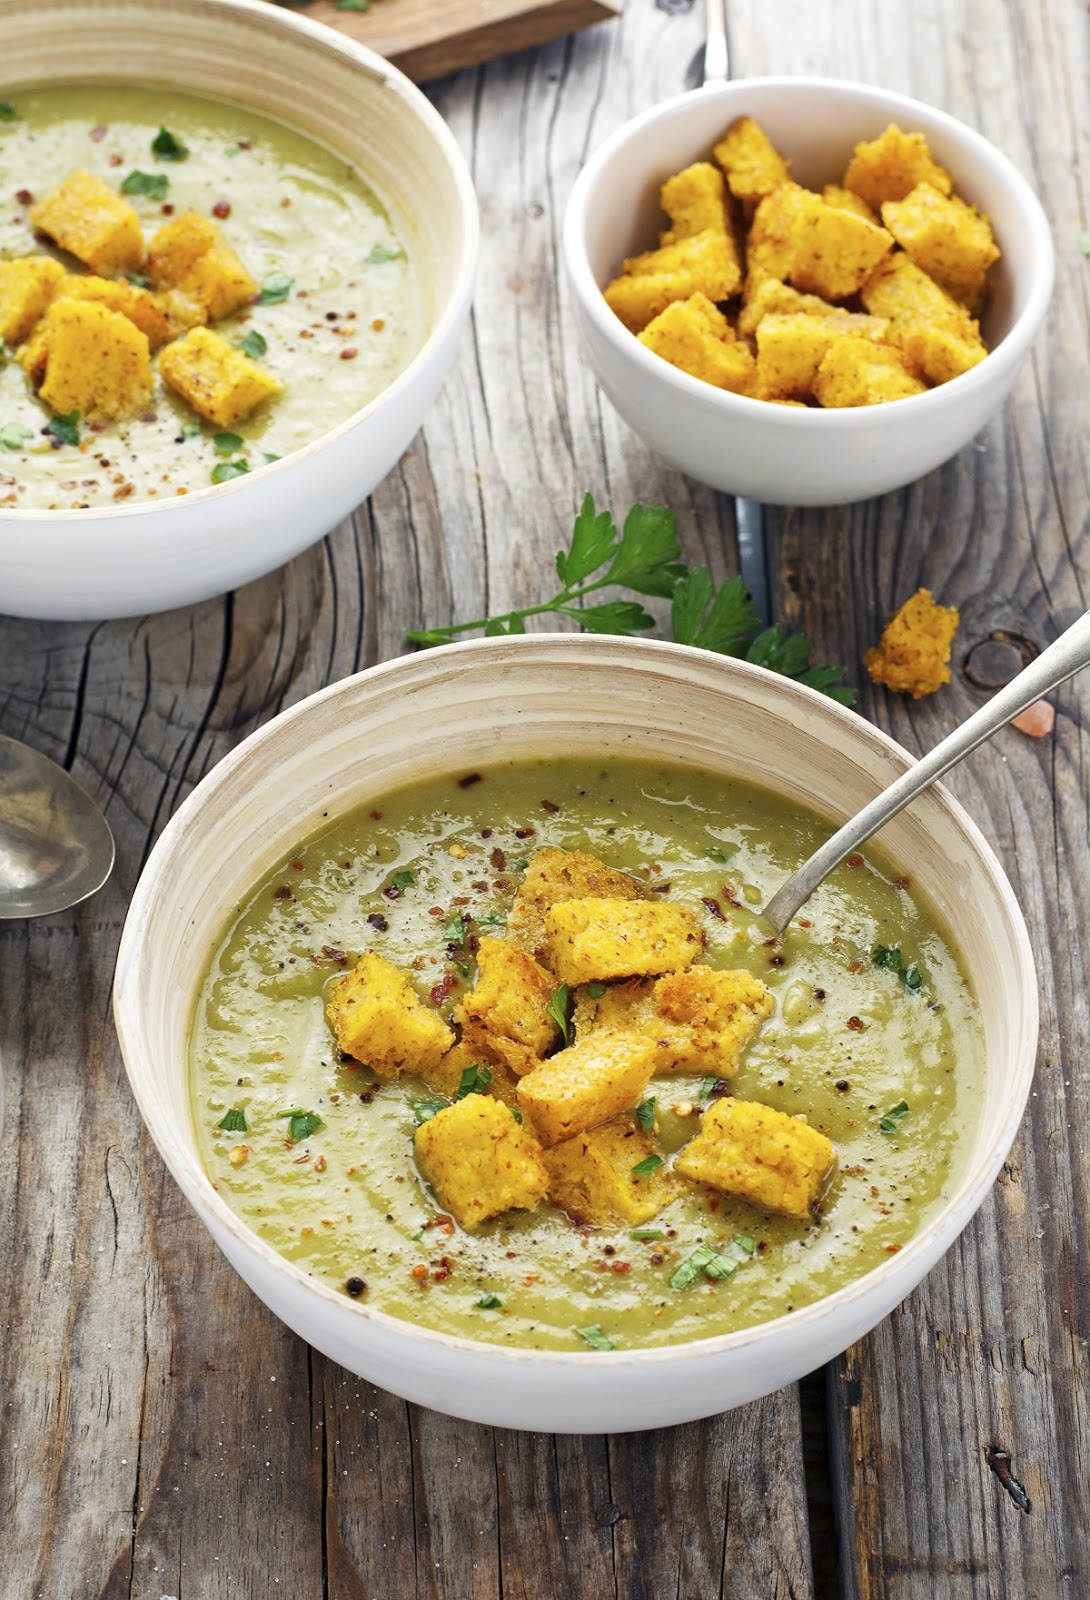 Green Machine Soup with Polenta Croutons